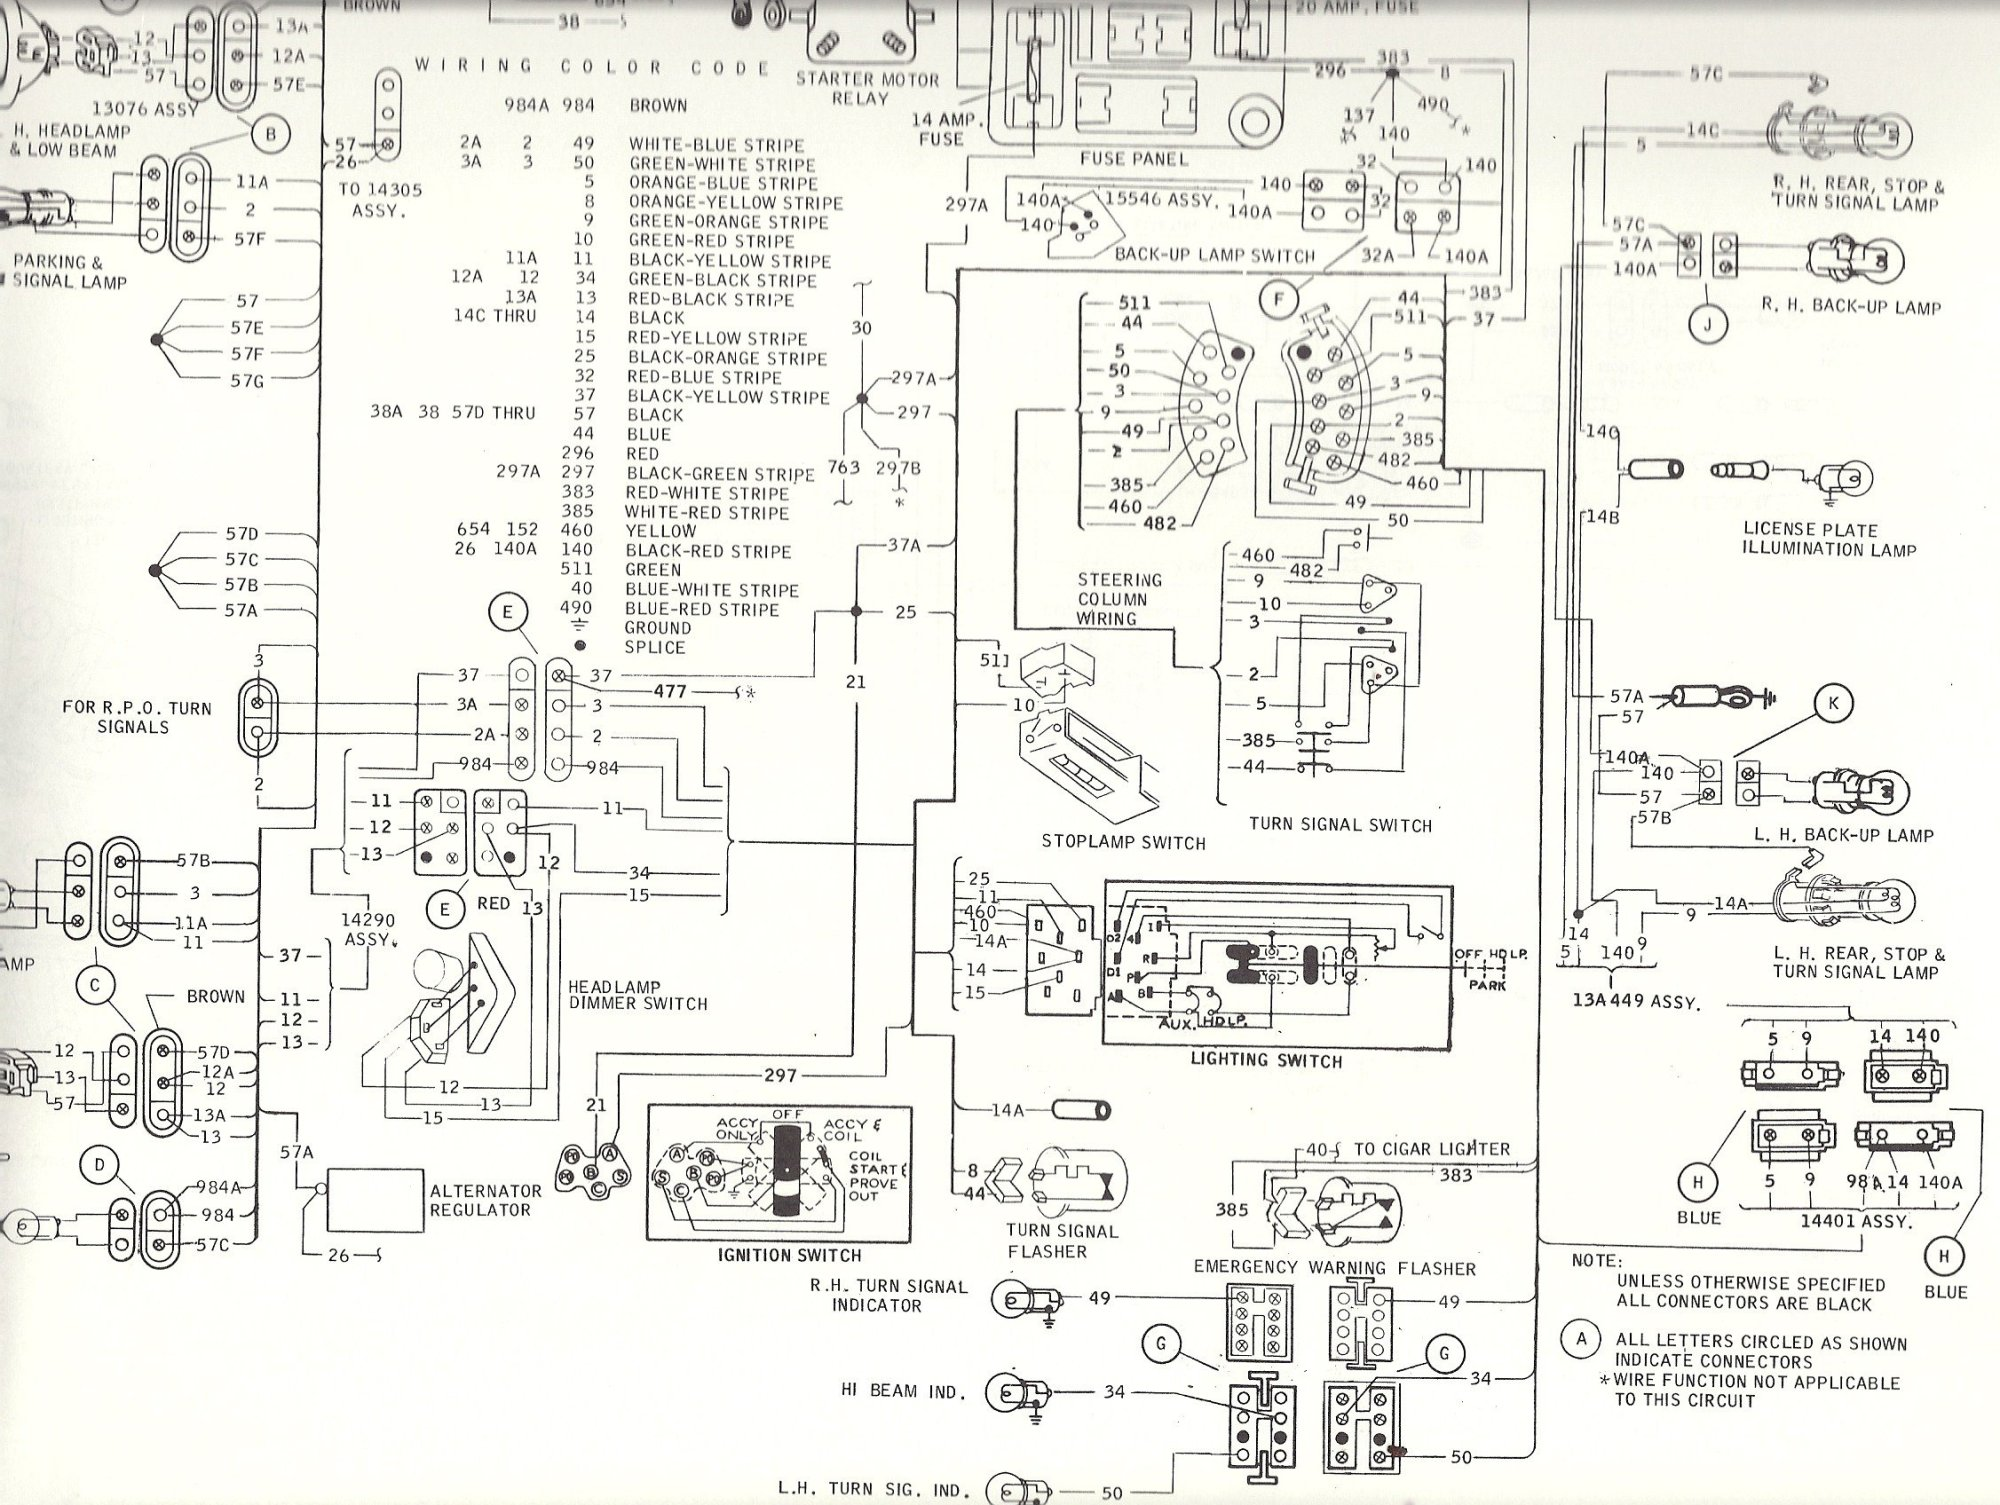 hight resolution of mustang hood turn signal wiring also 1966 ford mustang parts diagram 1967 ford mustang turn signal wiring diagram